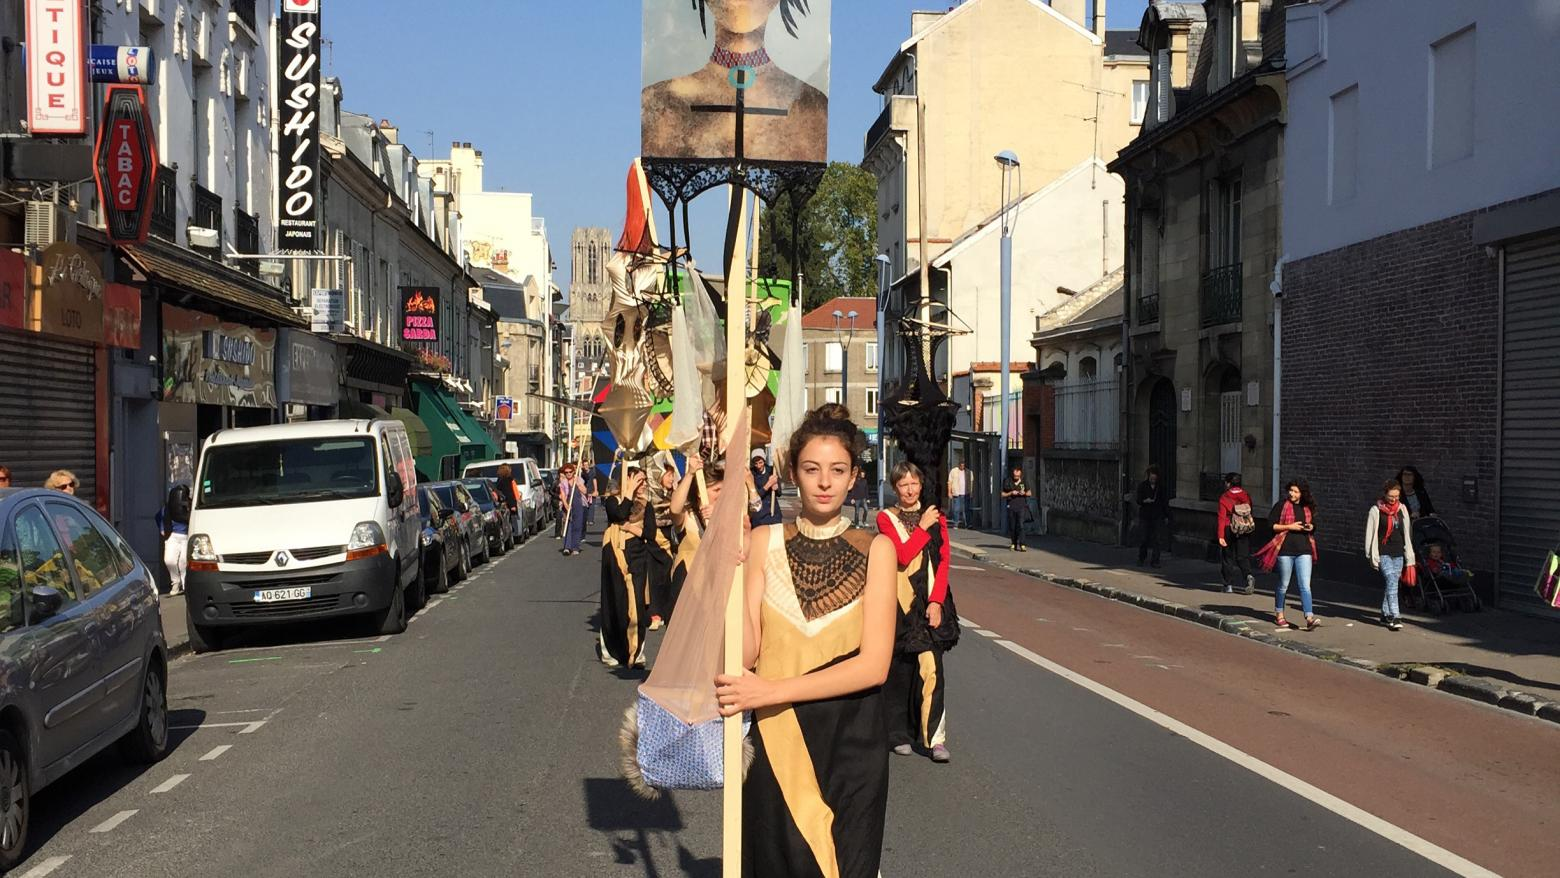 Lara Schnitger, Protest Parade (Suffragette City), 2015. FRAC Champagne-Ardenne, Reims, France. Courtesy the artist, Anton Kern Gallery, New York, FRAC Champagne-Ardenne.